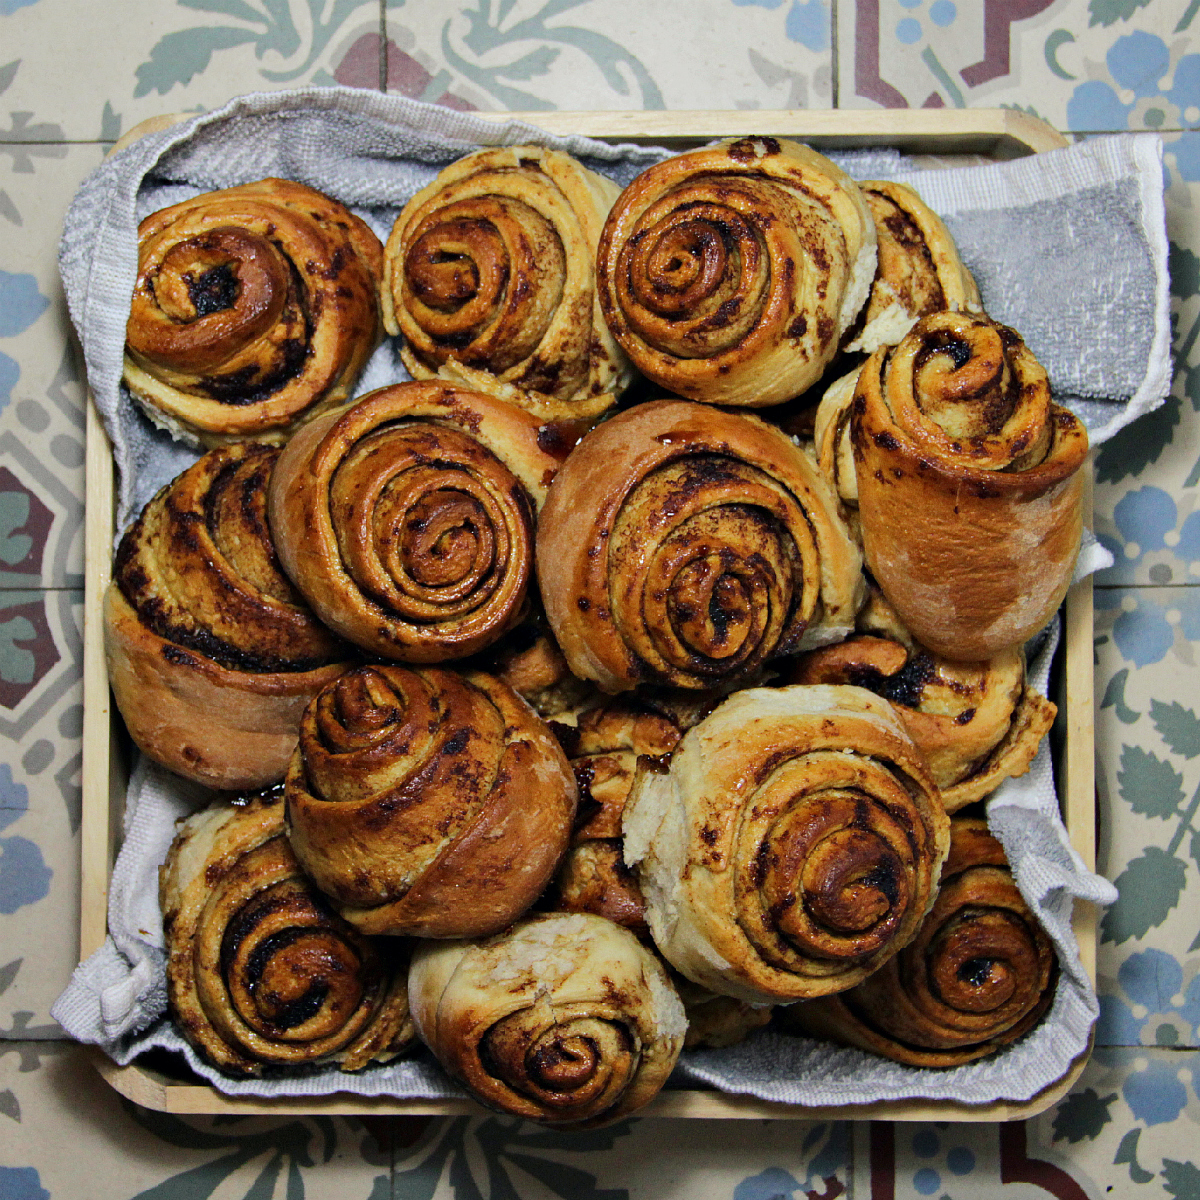 Vegan Cinnamon Rolls / Cinnabuns - The Vegan Eskimo